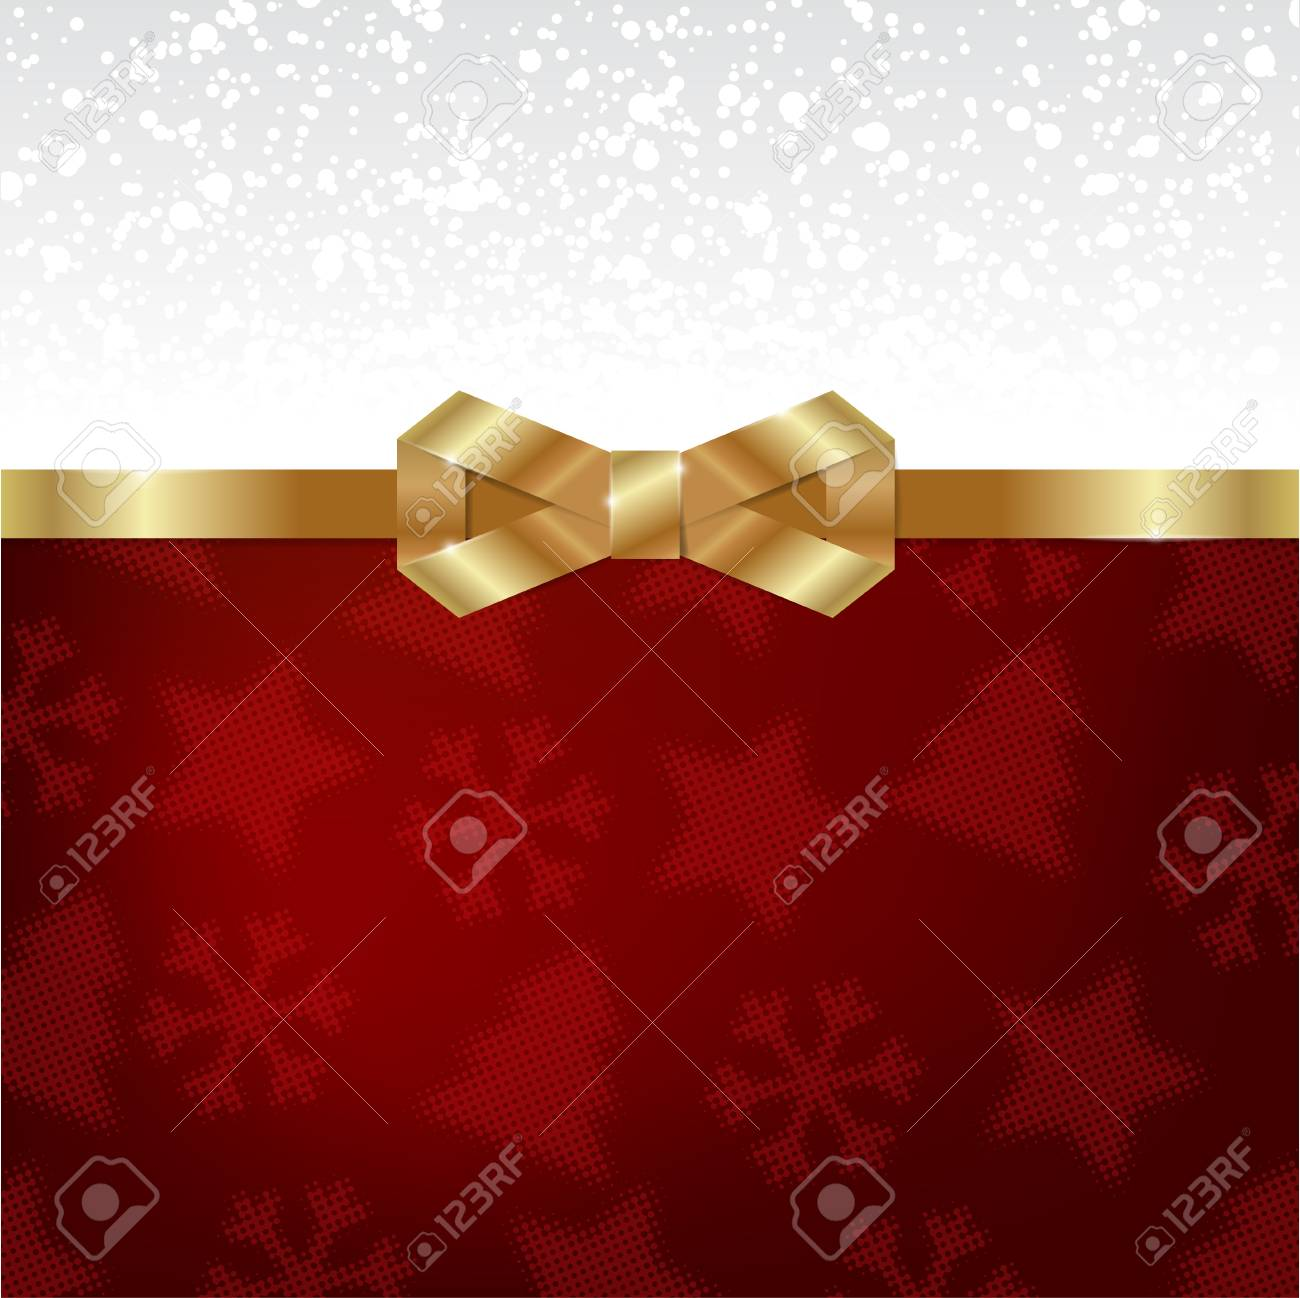 Elegant Christmas background with shiny gold bow Stock Vector - 16437664